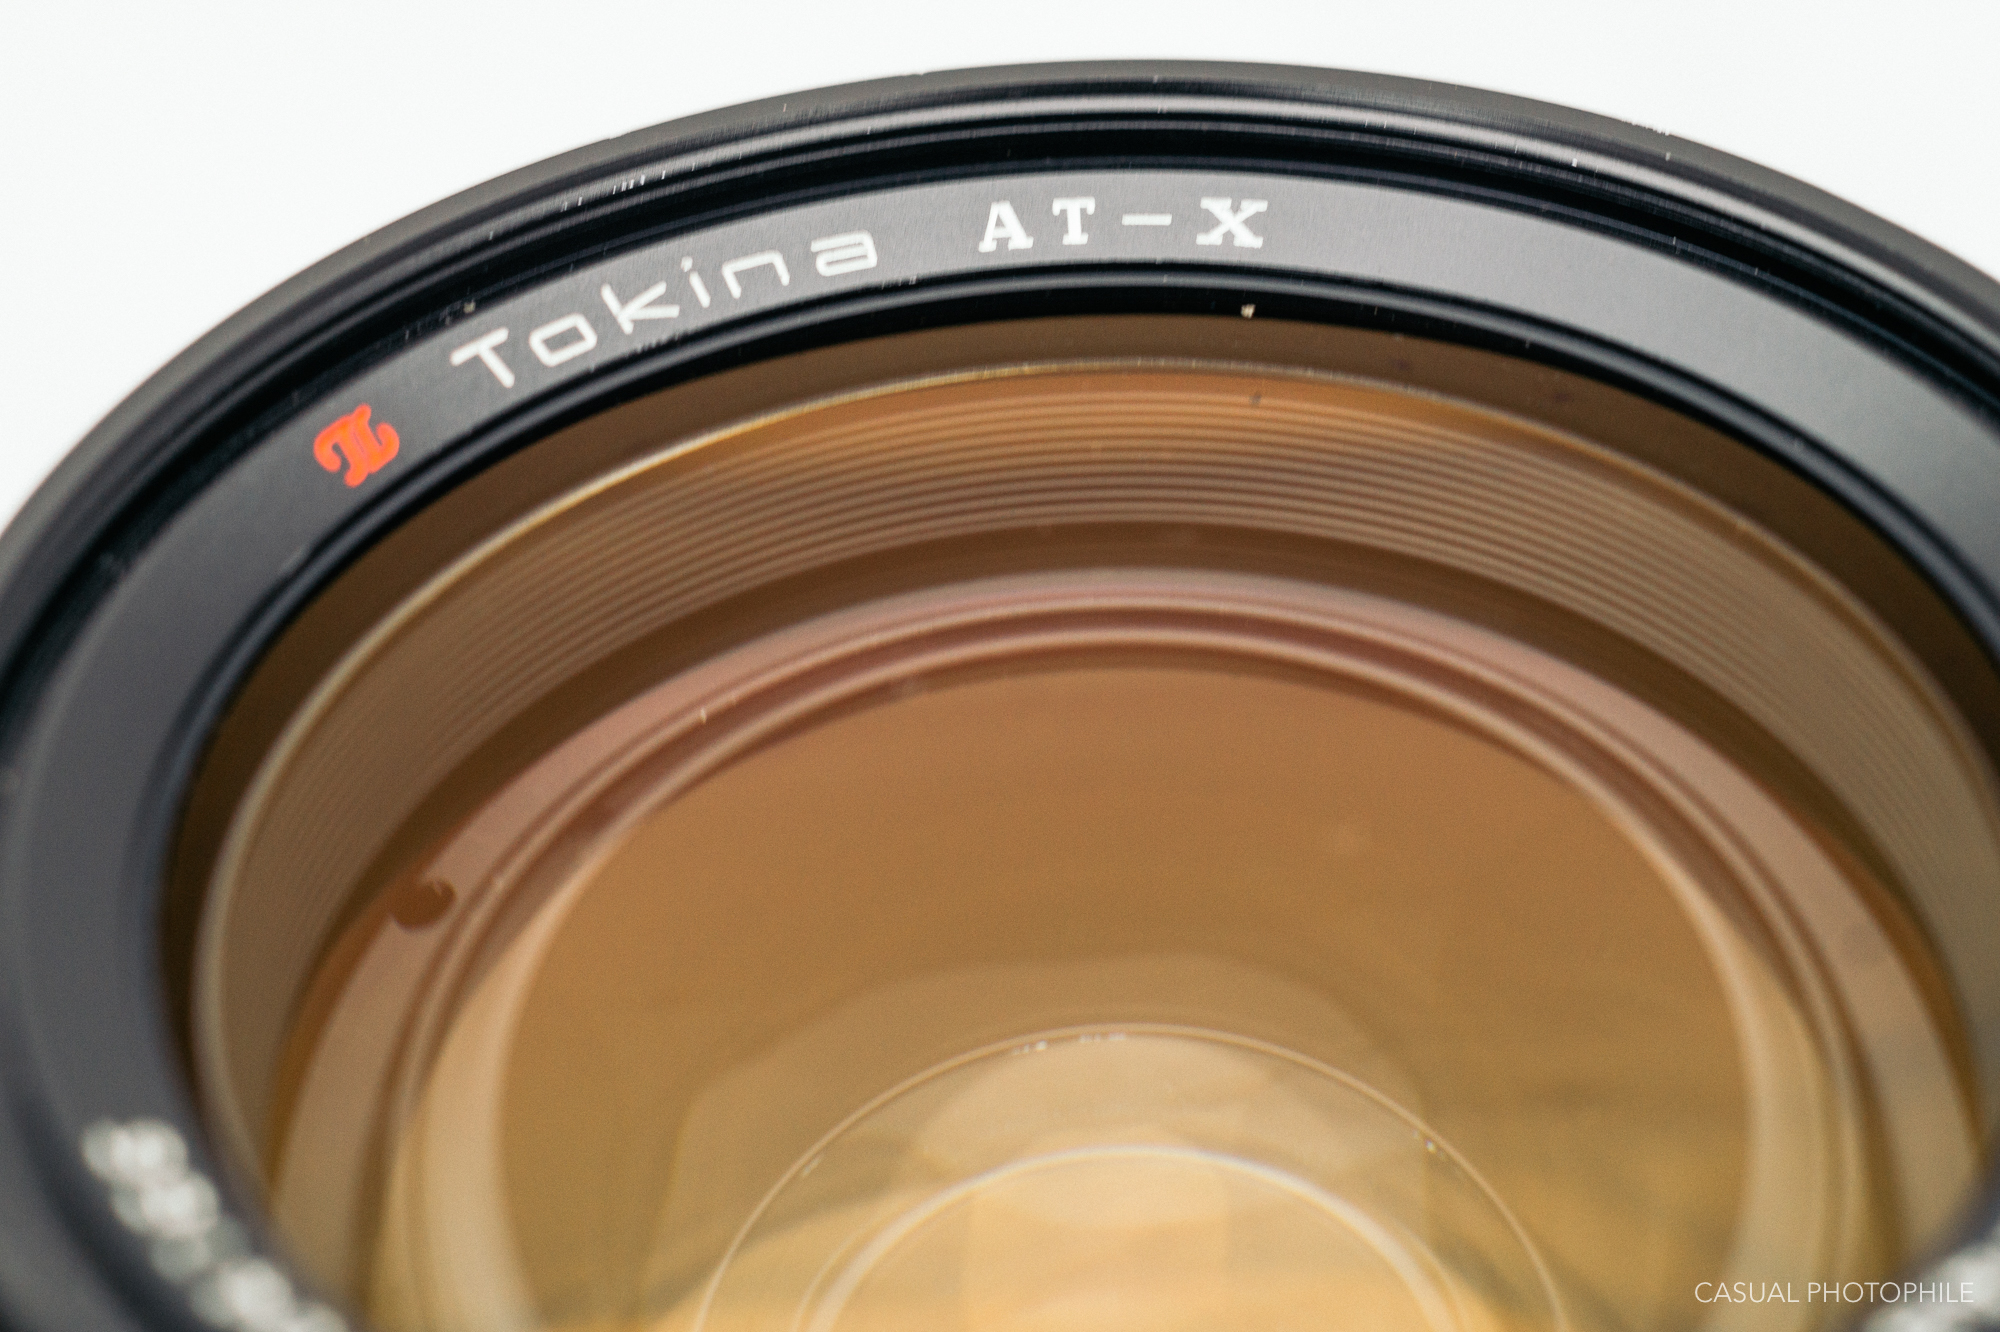 Five Reasons Vintage Zoom Lenses Aren't Terrible - Casual Photophile